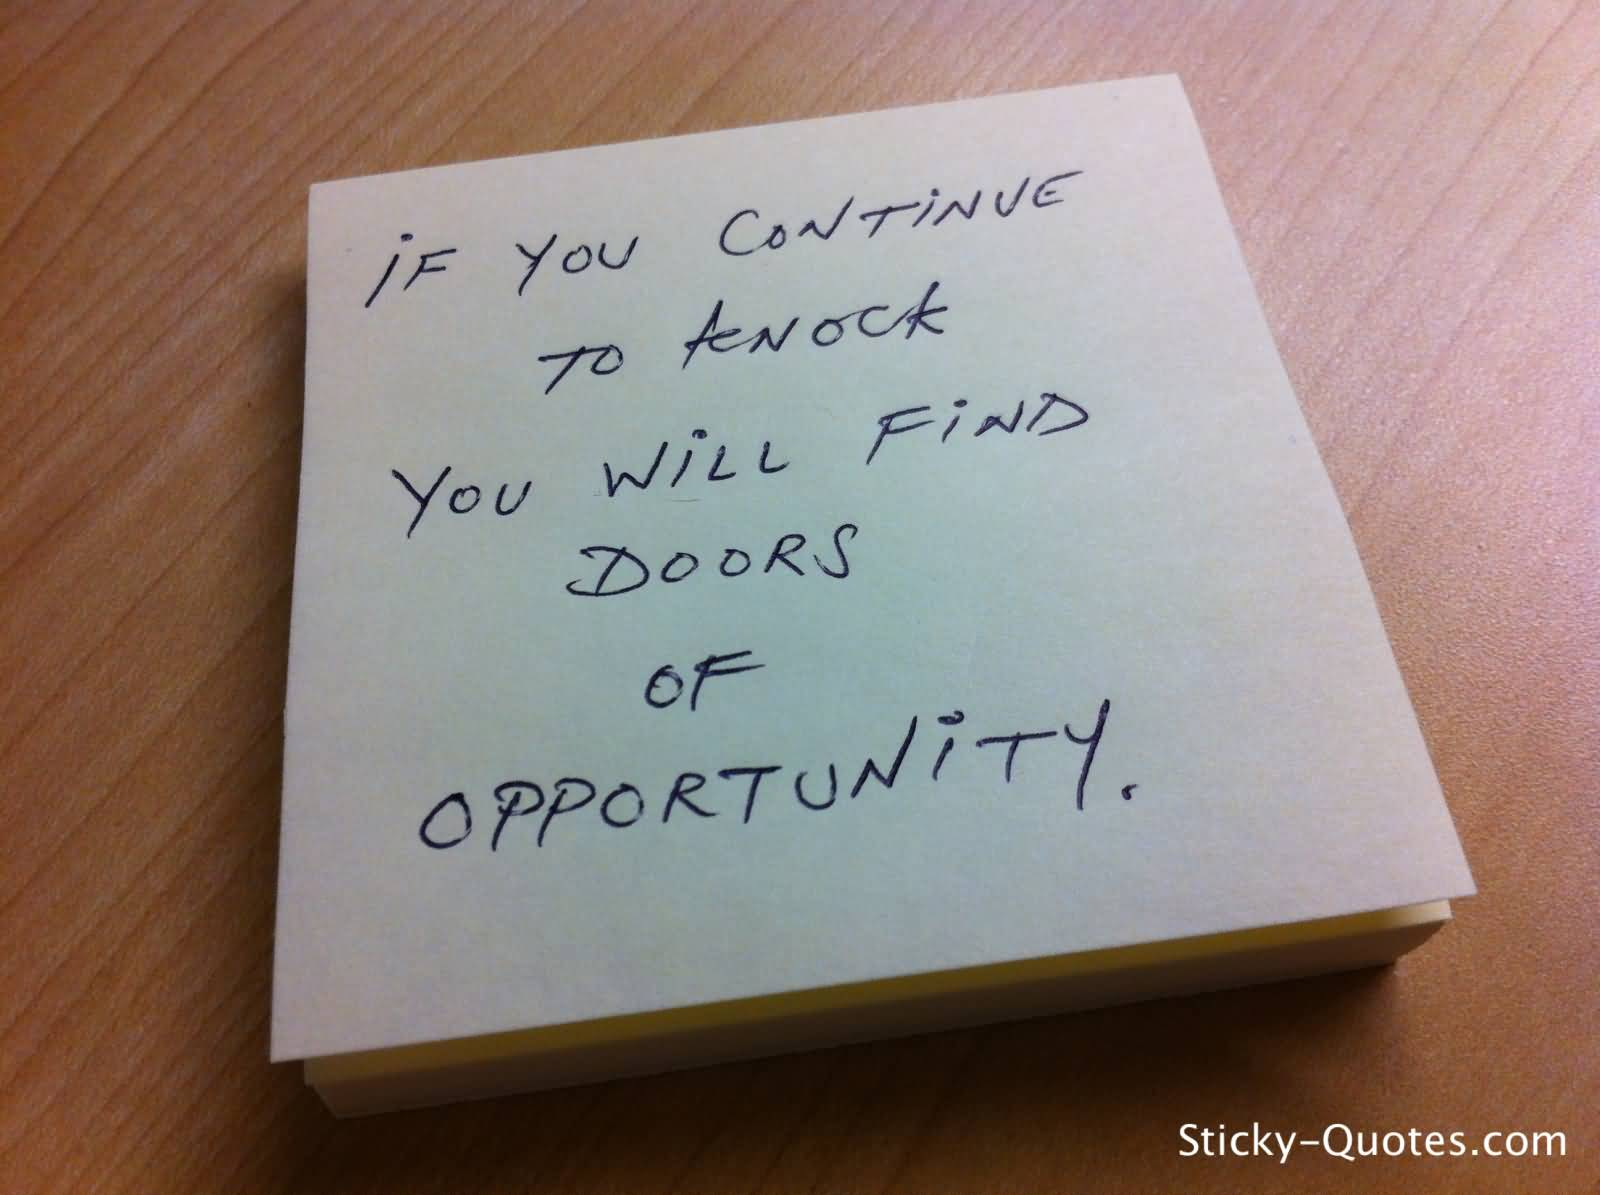 Quotes About Doors 60 Famous Opportunity Quotes And Sayings